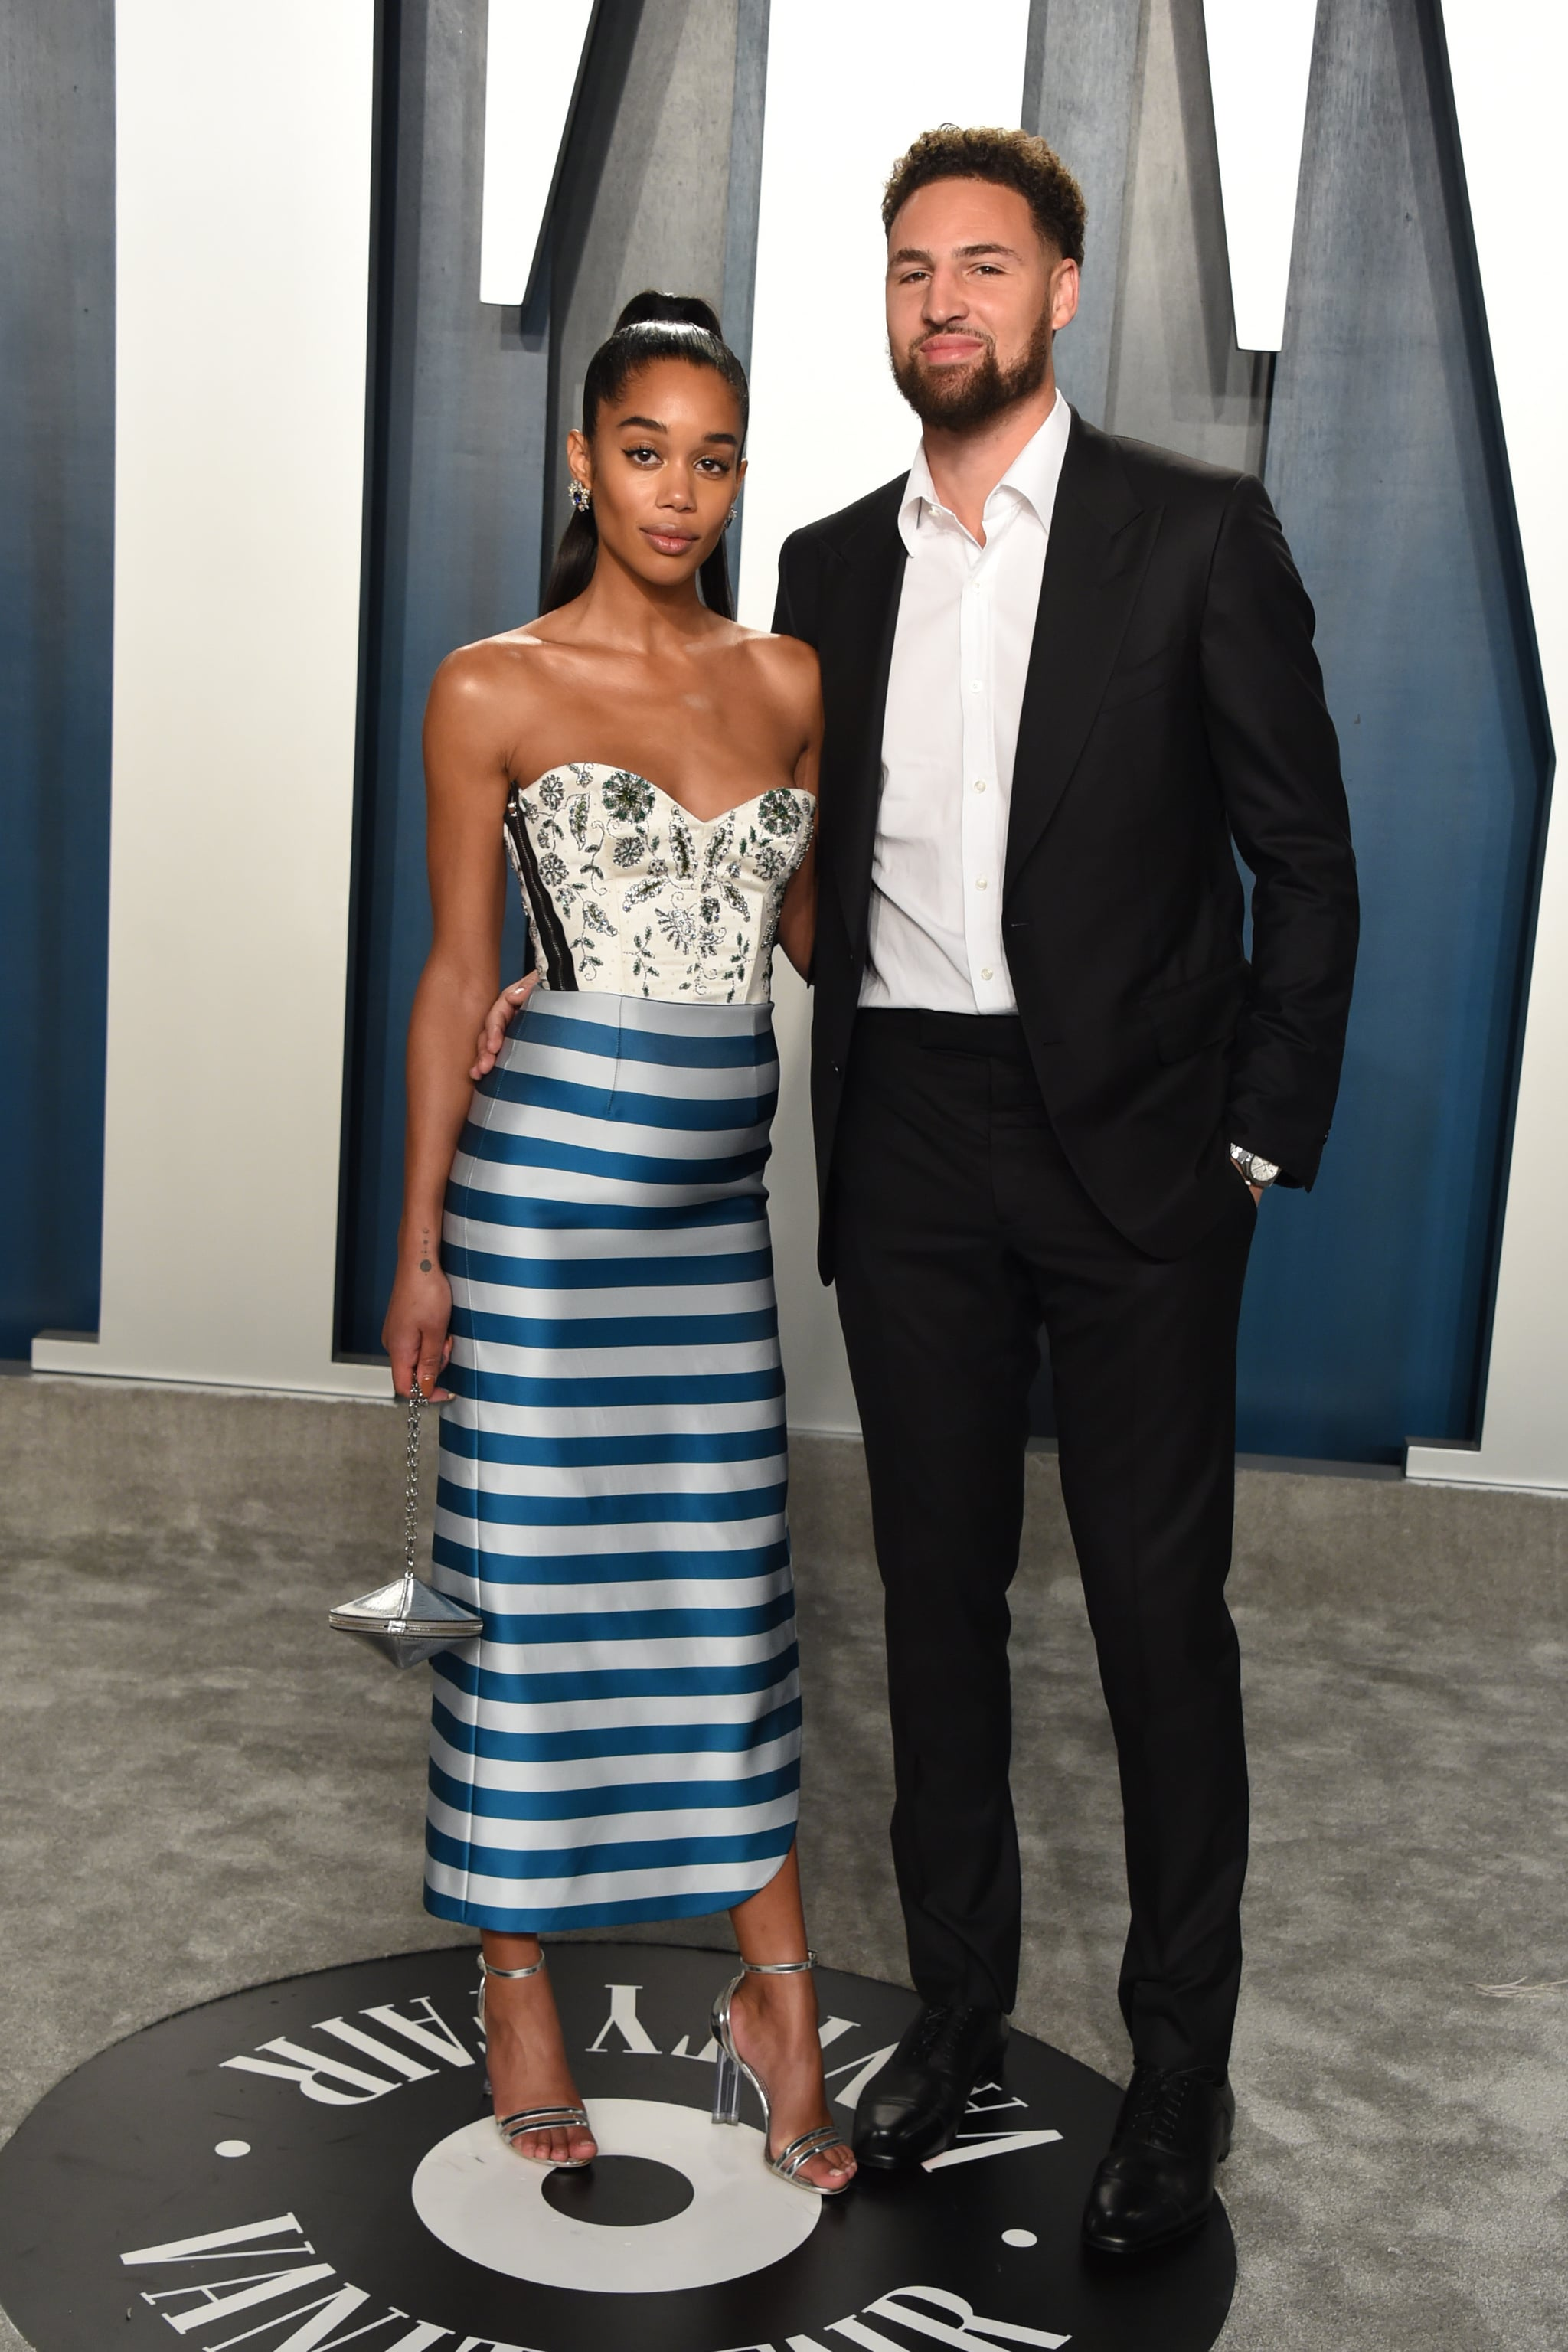 BEVERLY HILLS, CALIFORNIA - FEBRUARY 09: Laura Harrier (L) and Klay Thompson attend the 2020 Vanity Fair Oscar Party hosted by Radhika Jones at Wallis Annenberg Center for the Performing Arts on February 09, 2020 in Beverly Hills, California. (Photo by John Shearer/Getty Images)